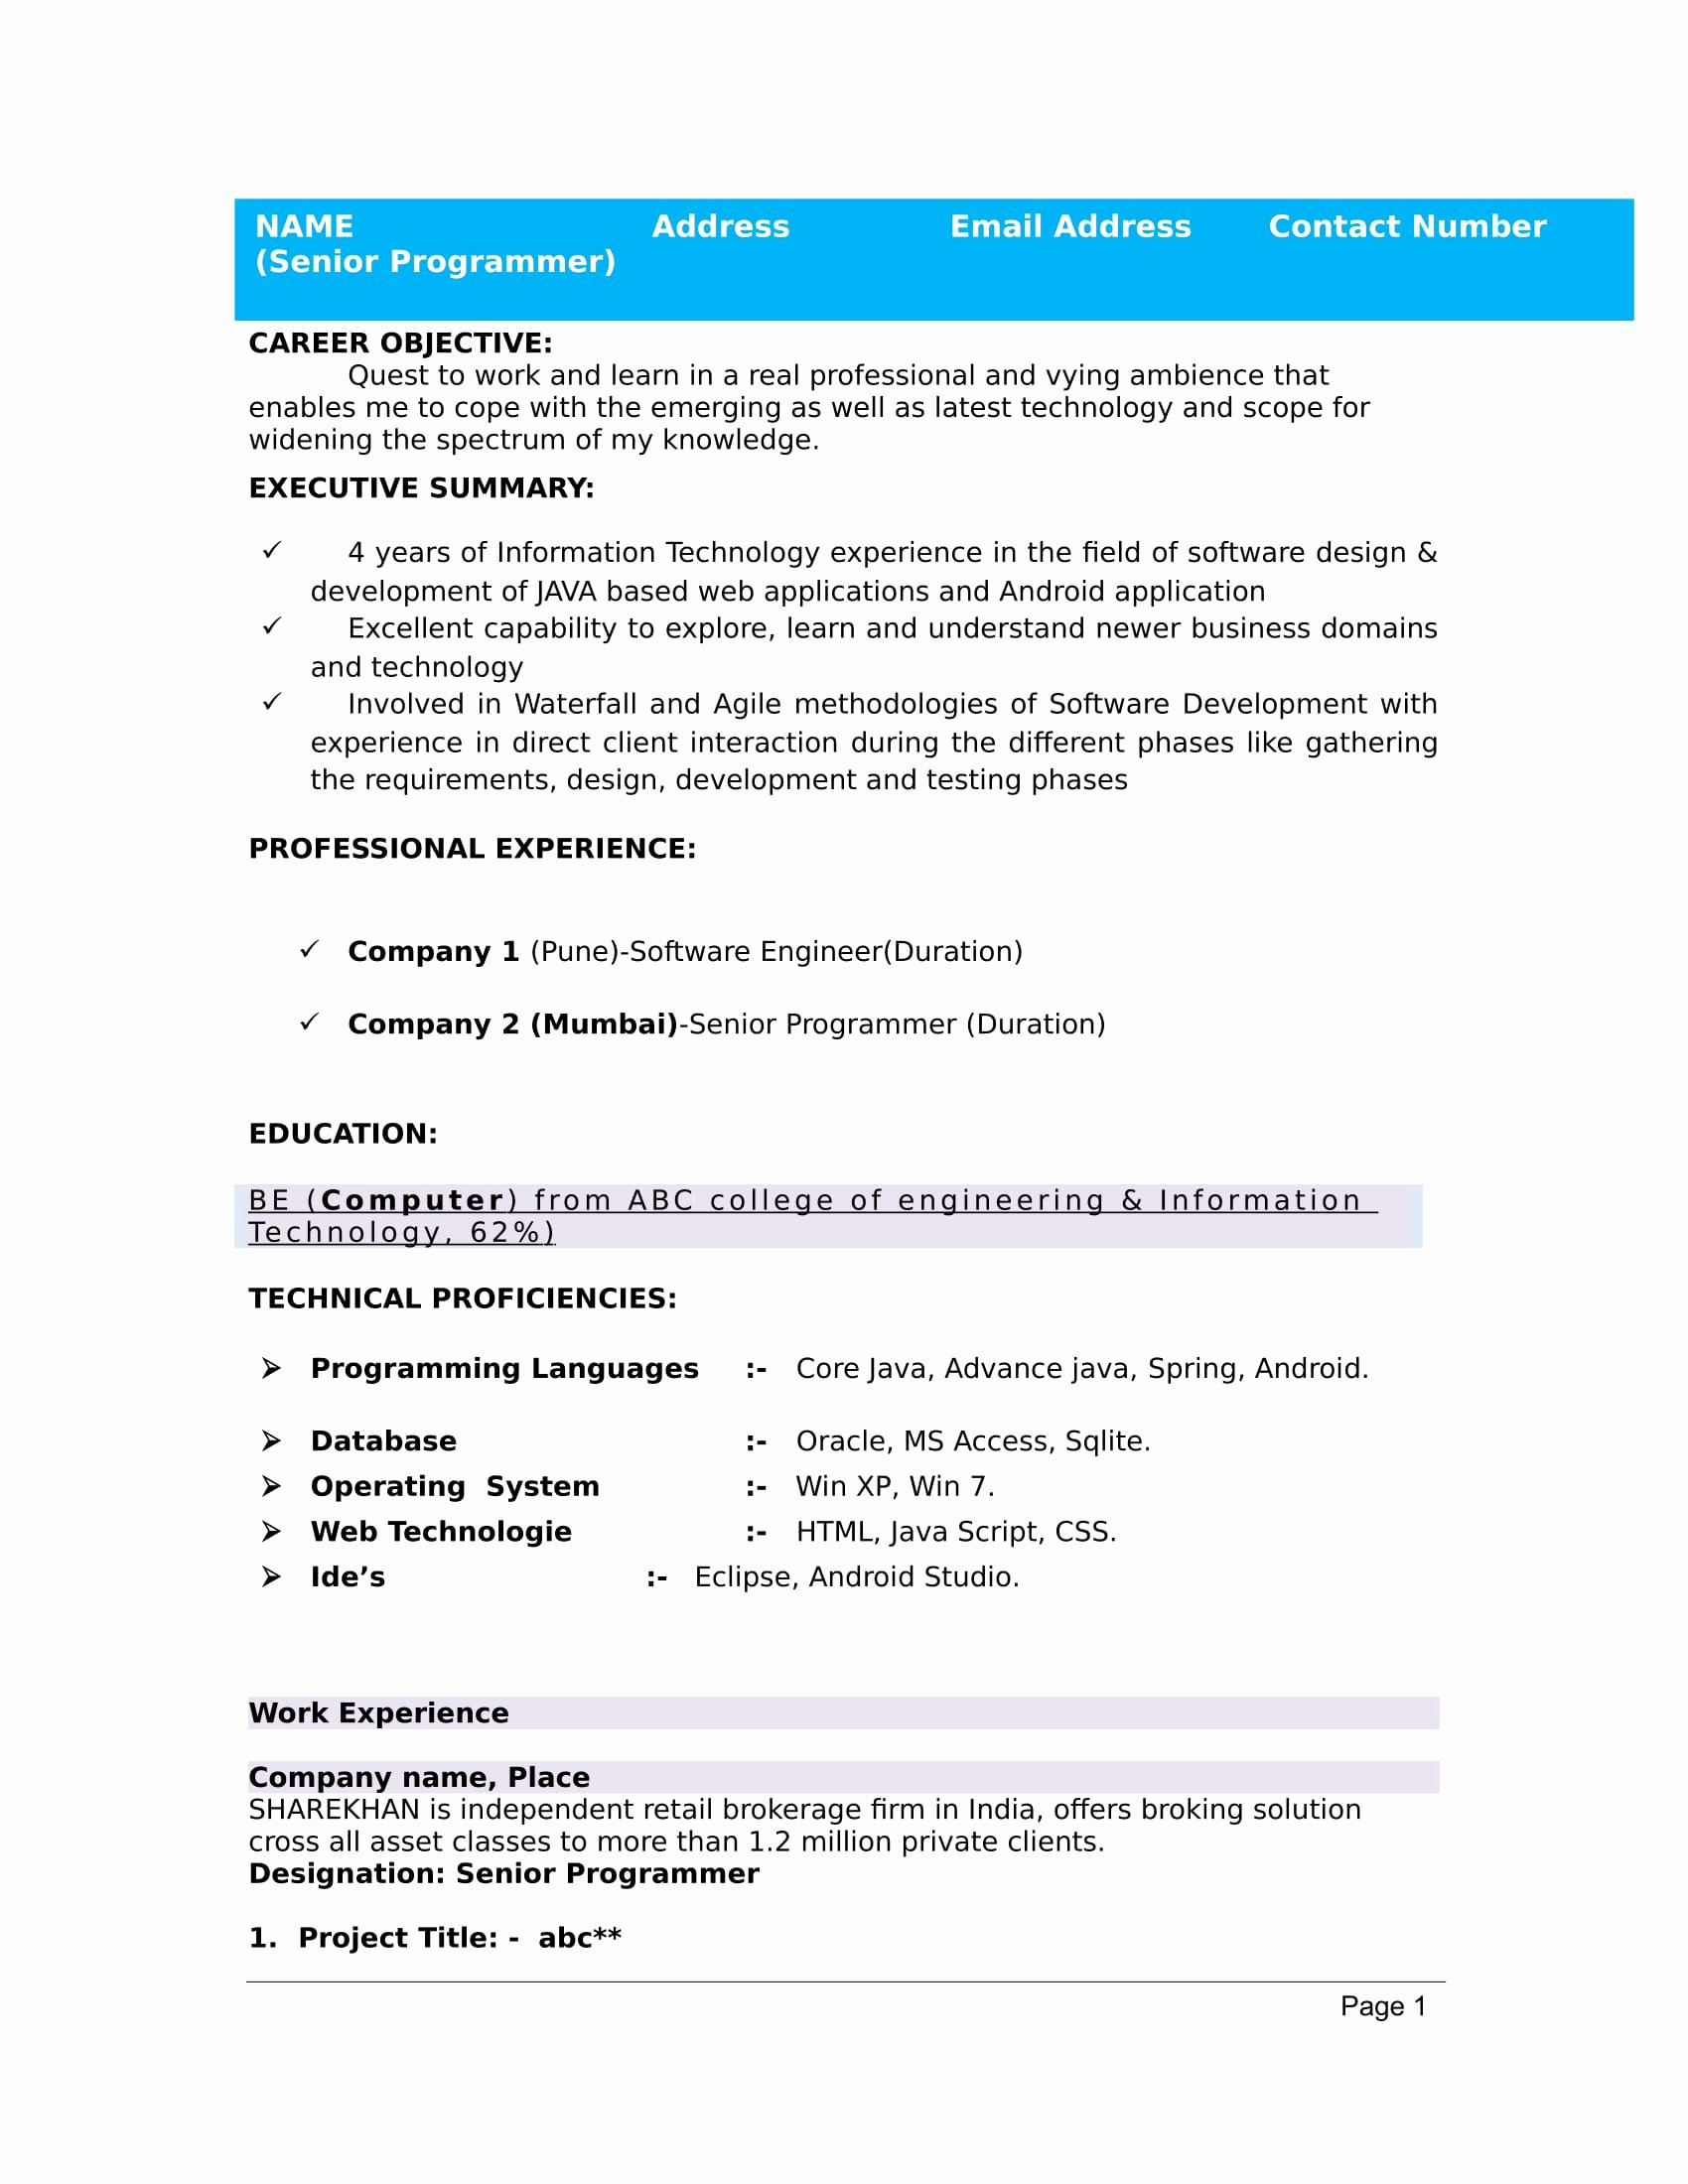 Sample Resume for Freshers Lovely 32 Resume Templates for Freshers Download Free Word format